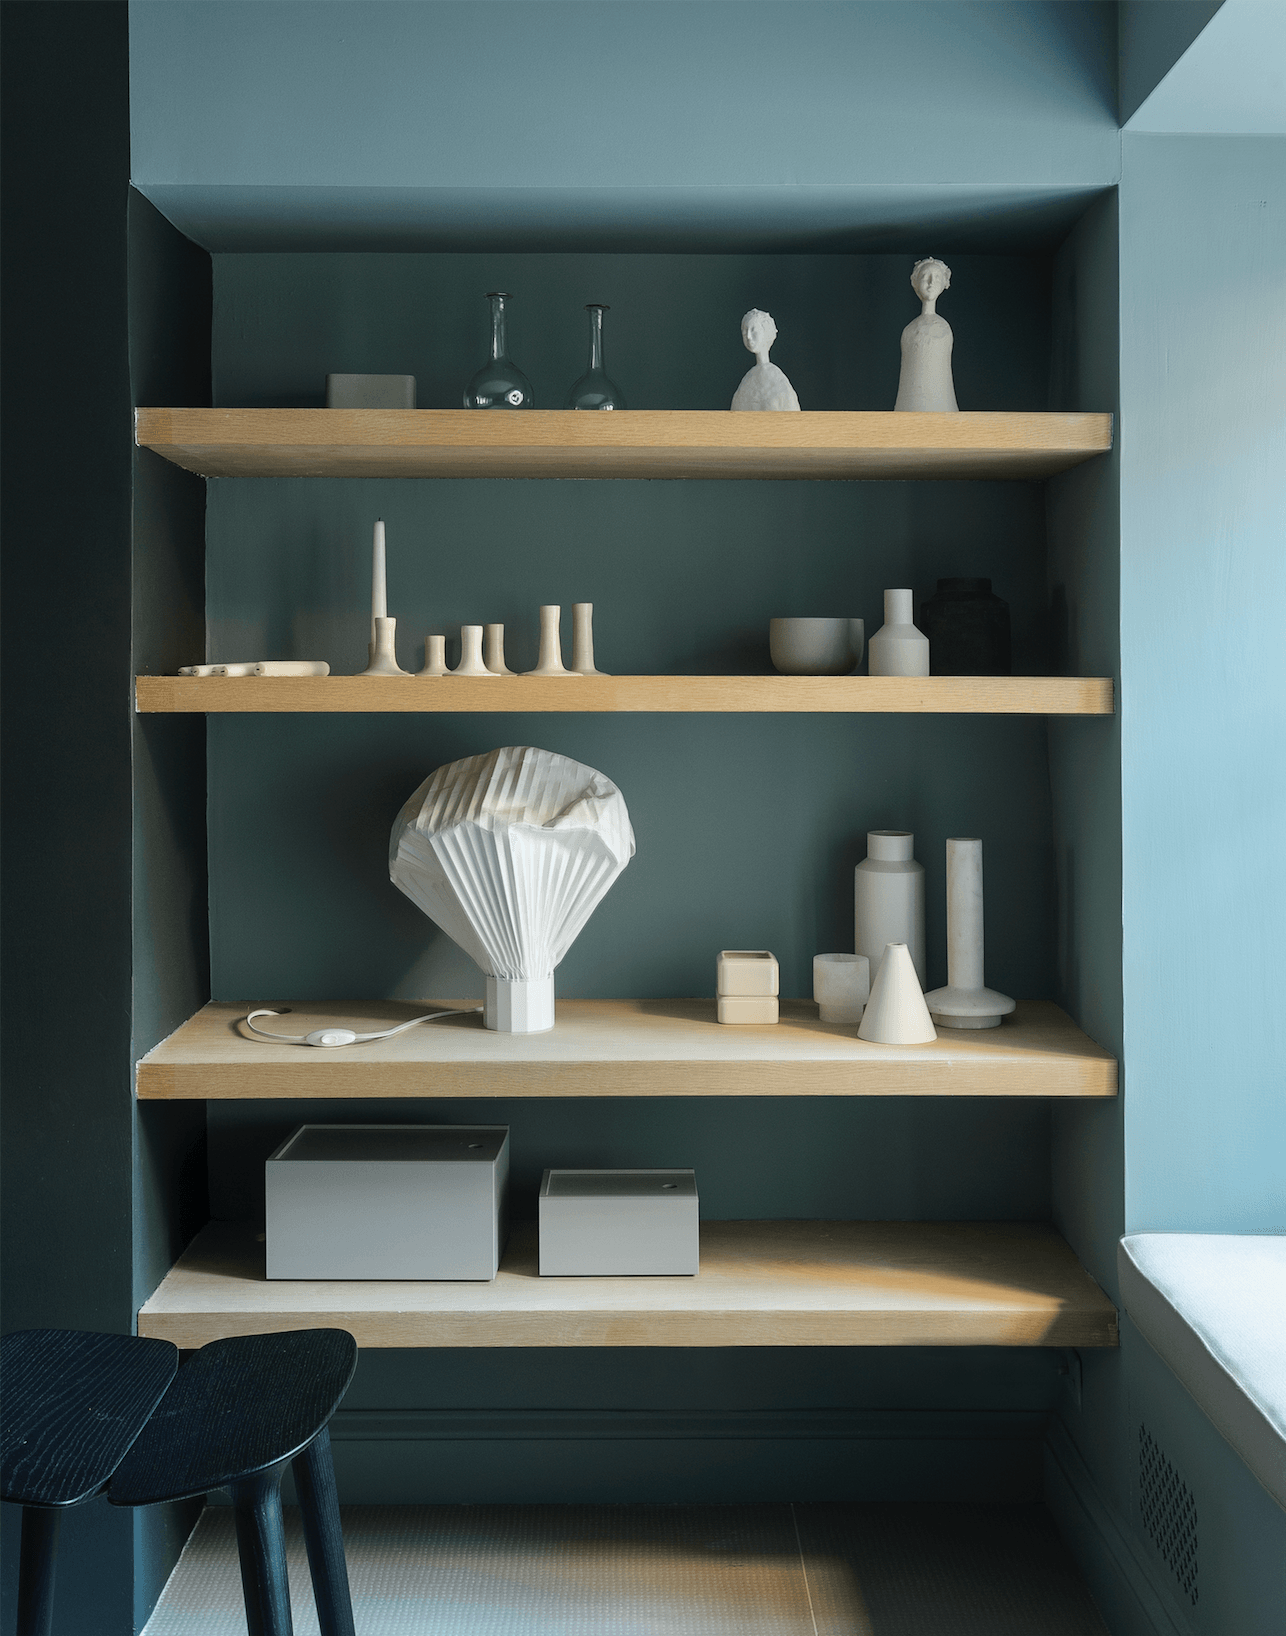 Studio Oink designed a shelving system with a built-in bench. The fireplace is painted inFarrow & Ball&#8